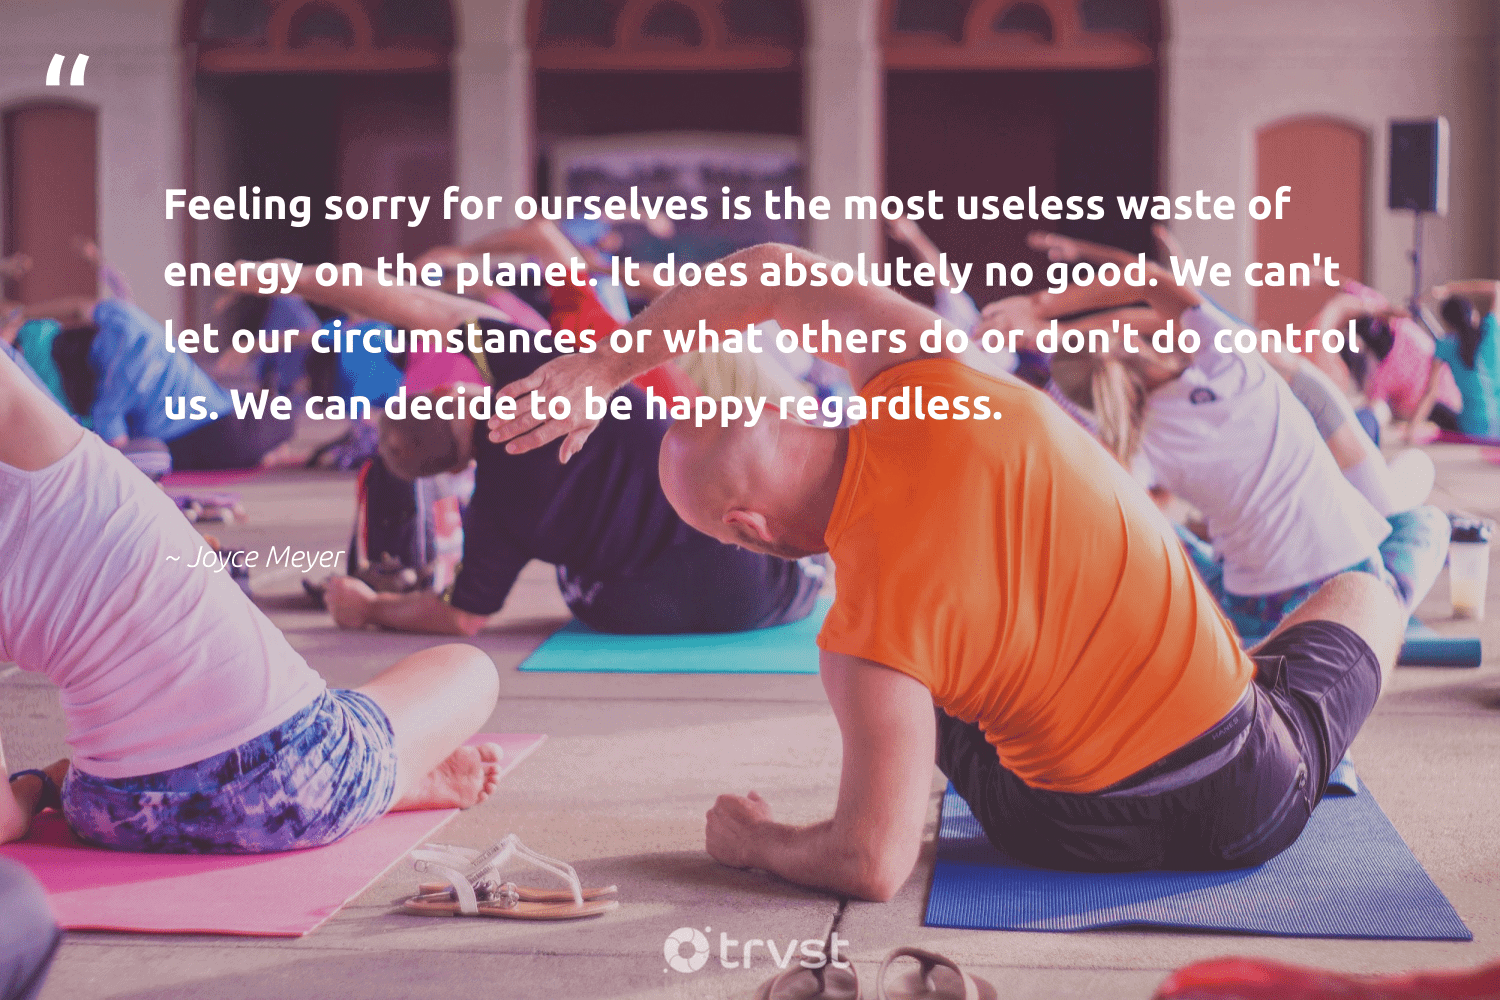 """""""Feeling sorry for ourselves is the most useless waste of energy on the planet. It does absolutely no good. We can't let our circumstances or what others do or don't do control us. We can decide to be happy regardless.""""  - Joyce Meyer #trvst #quotes #waste #energy #planet #happy #conservation #changemakers #sustainability #bethechange #nature #mindset"""